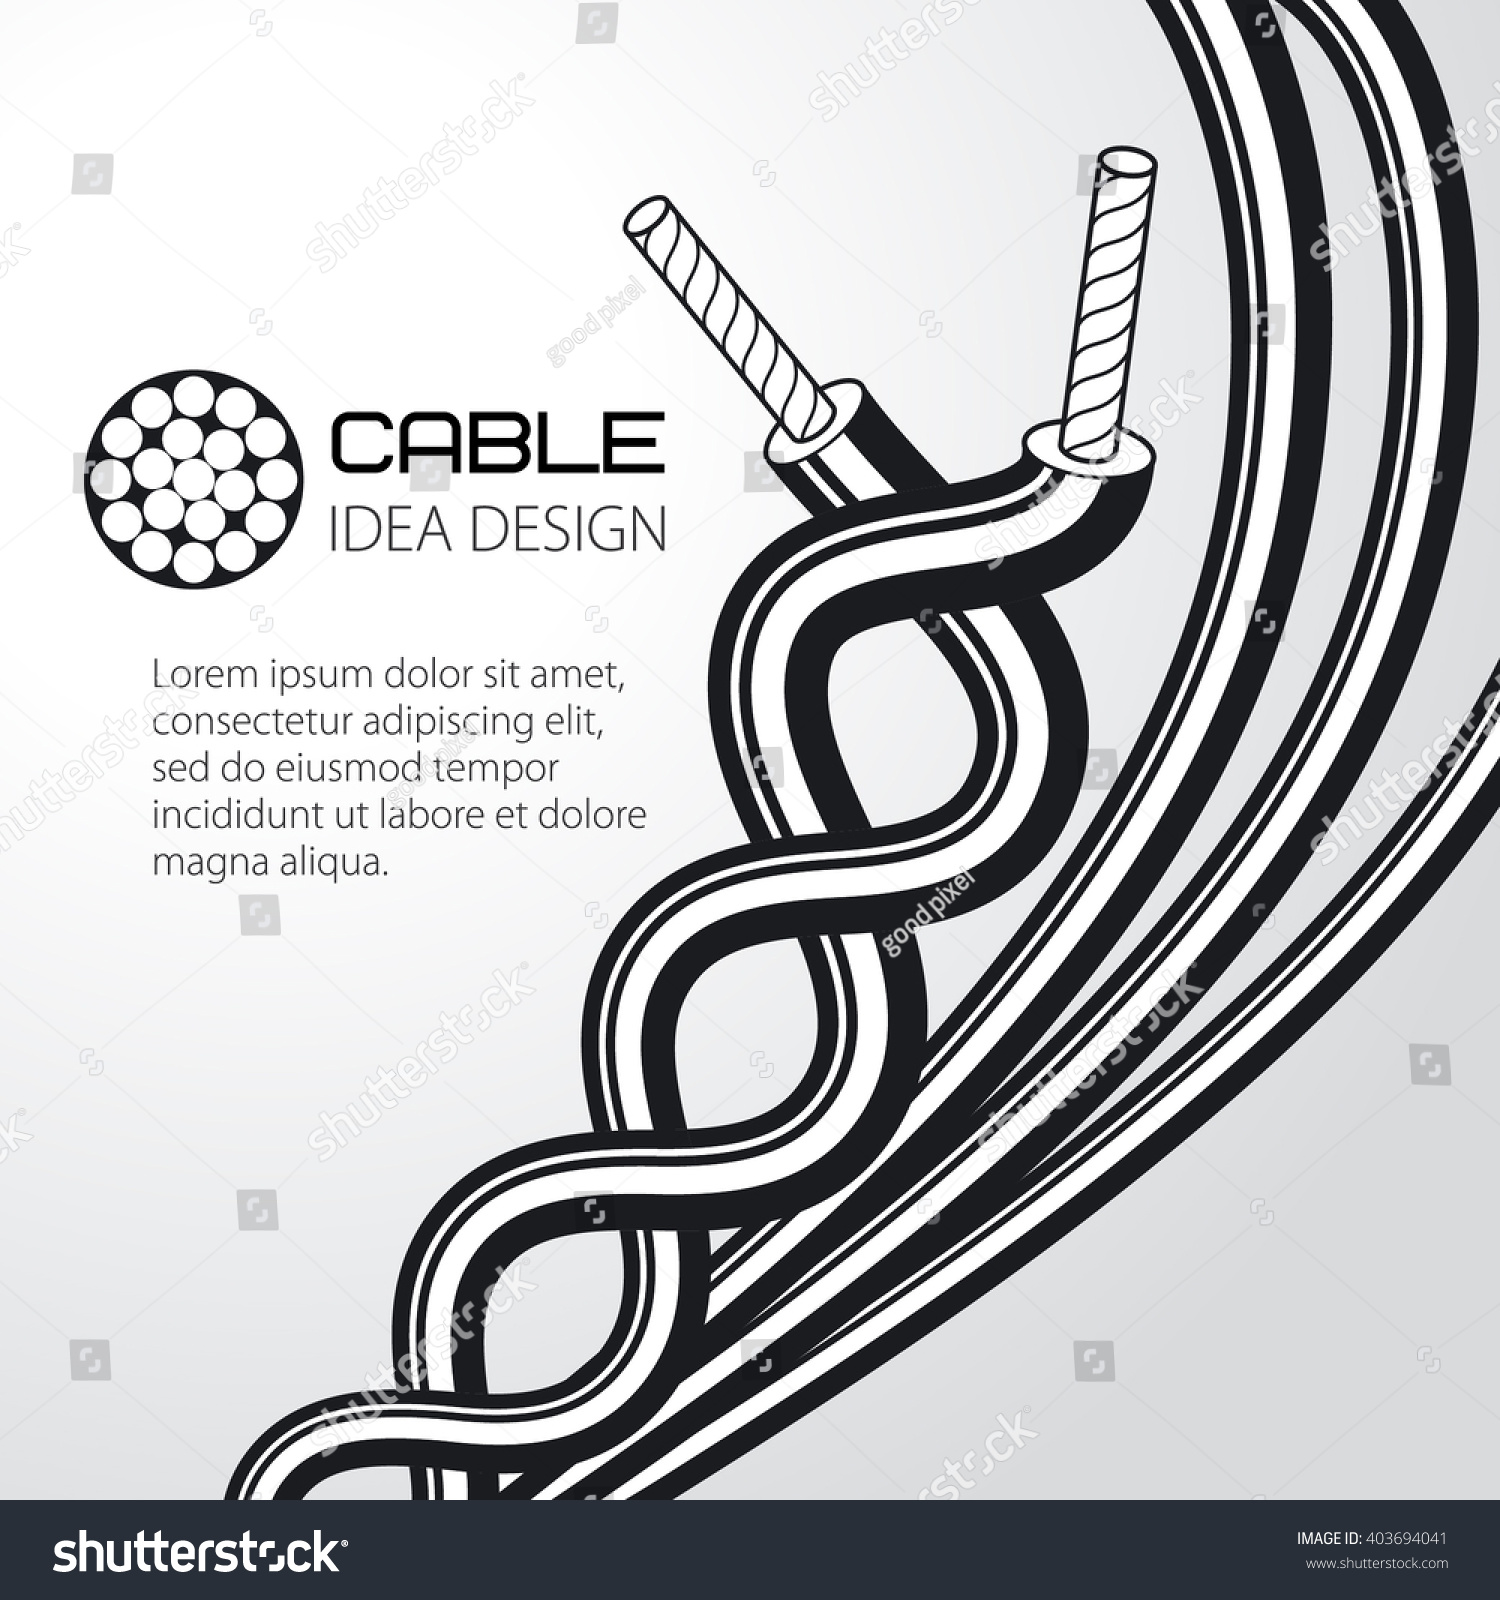 Cable Wire Vector Design Stock Vector HD (Royalty Free) 403694041 ...